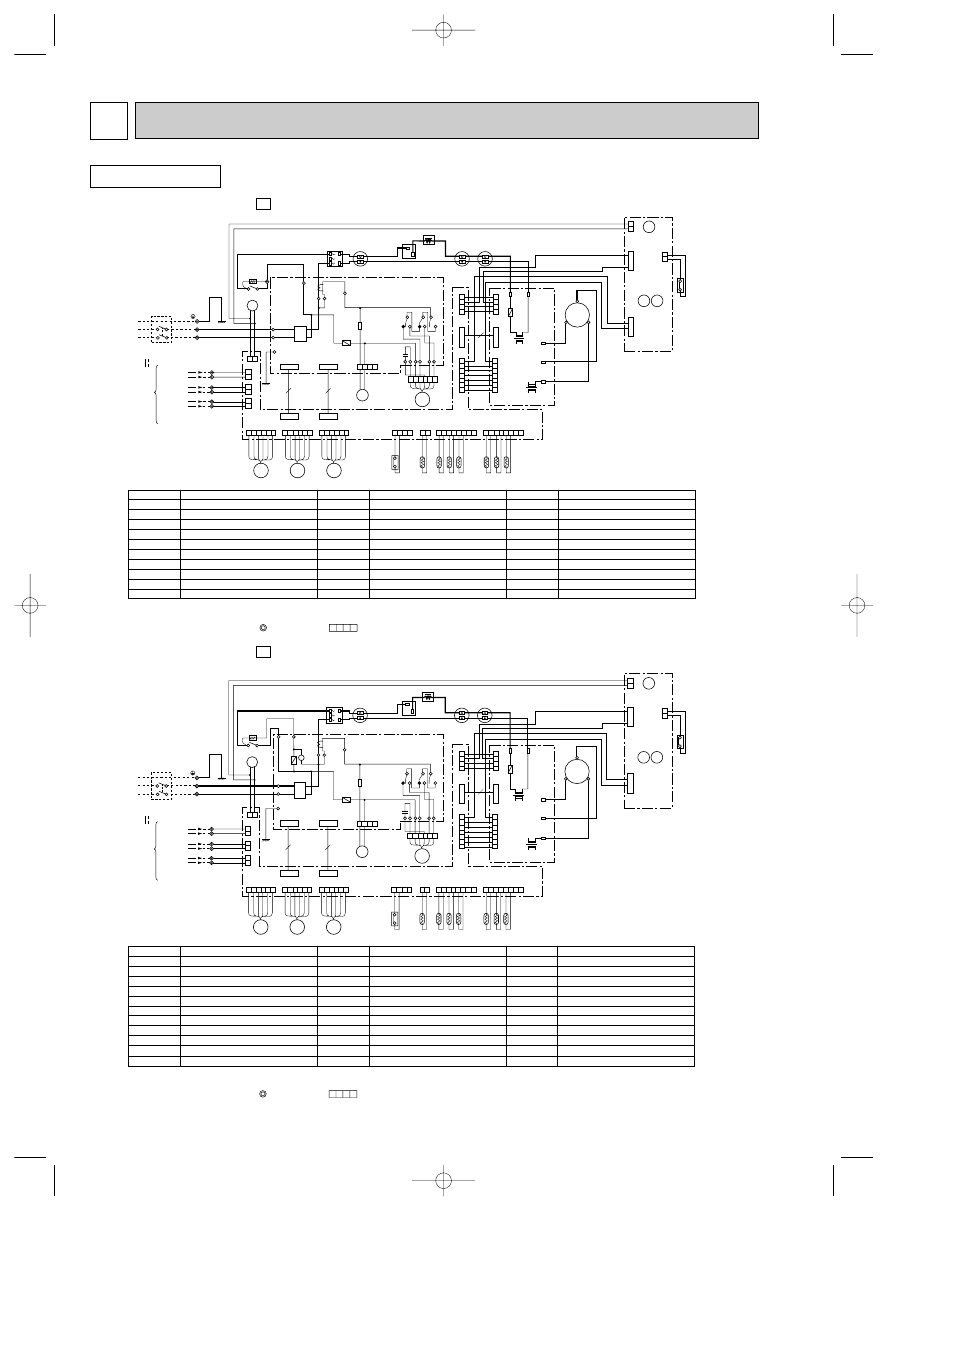 wiring diagram 8, models mxz-24uv, outdoor unit | mitsubishi electric mxz-